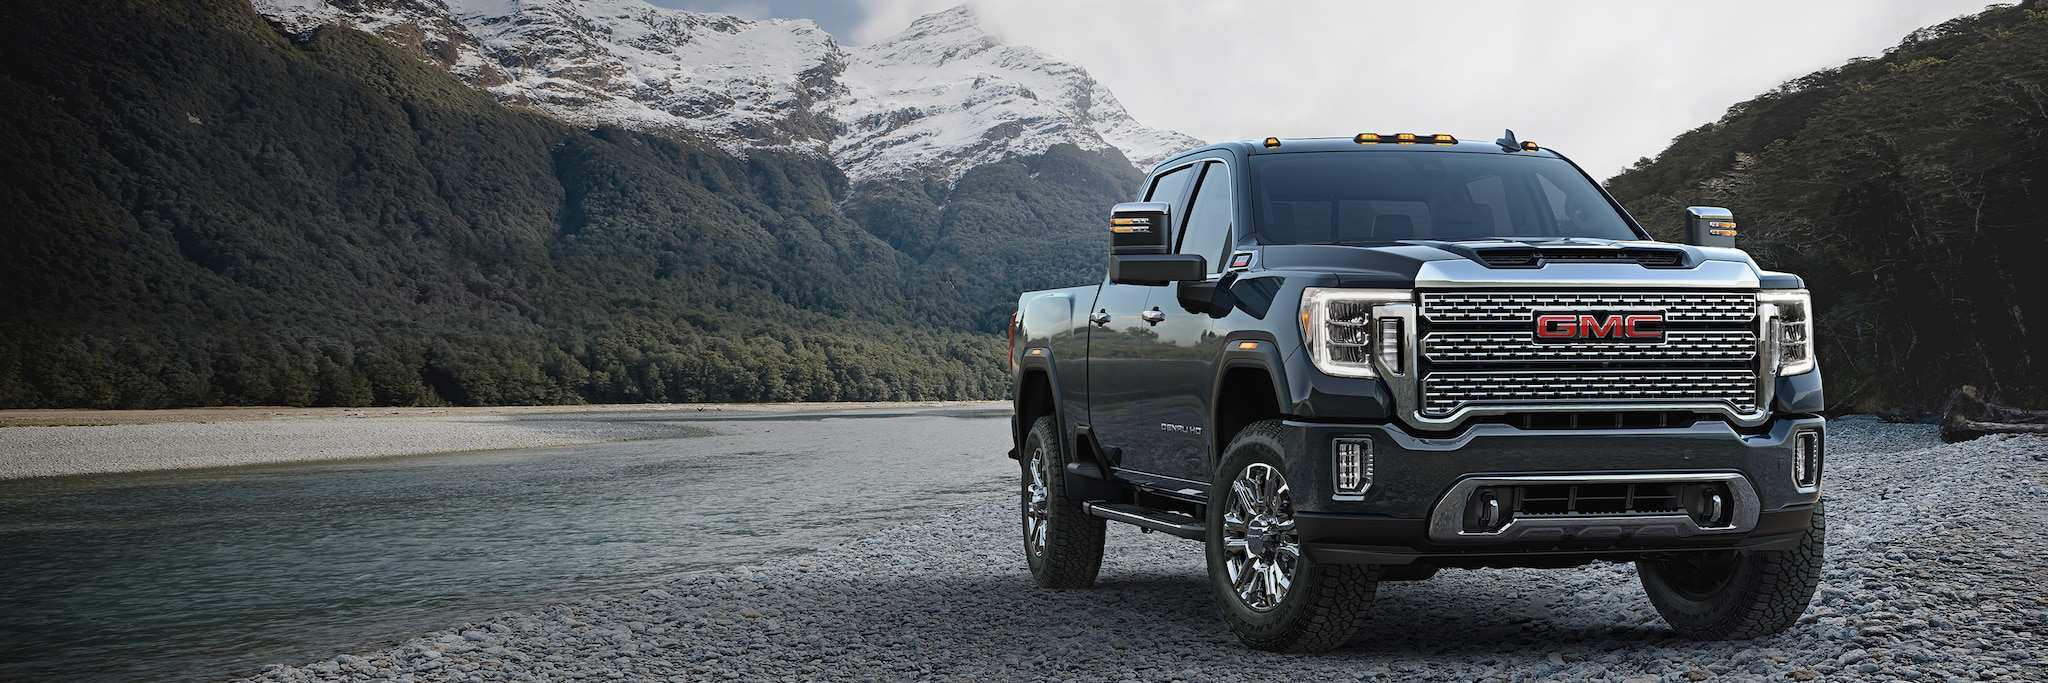 48 All New Gmc Topkick 2020 Price And Release Date